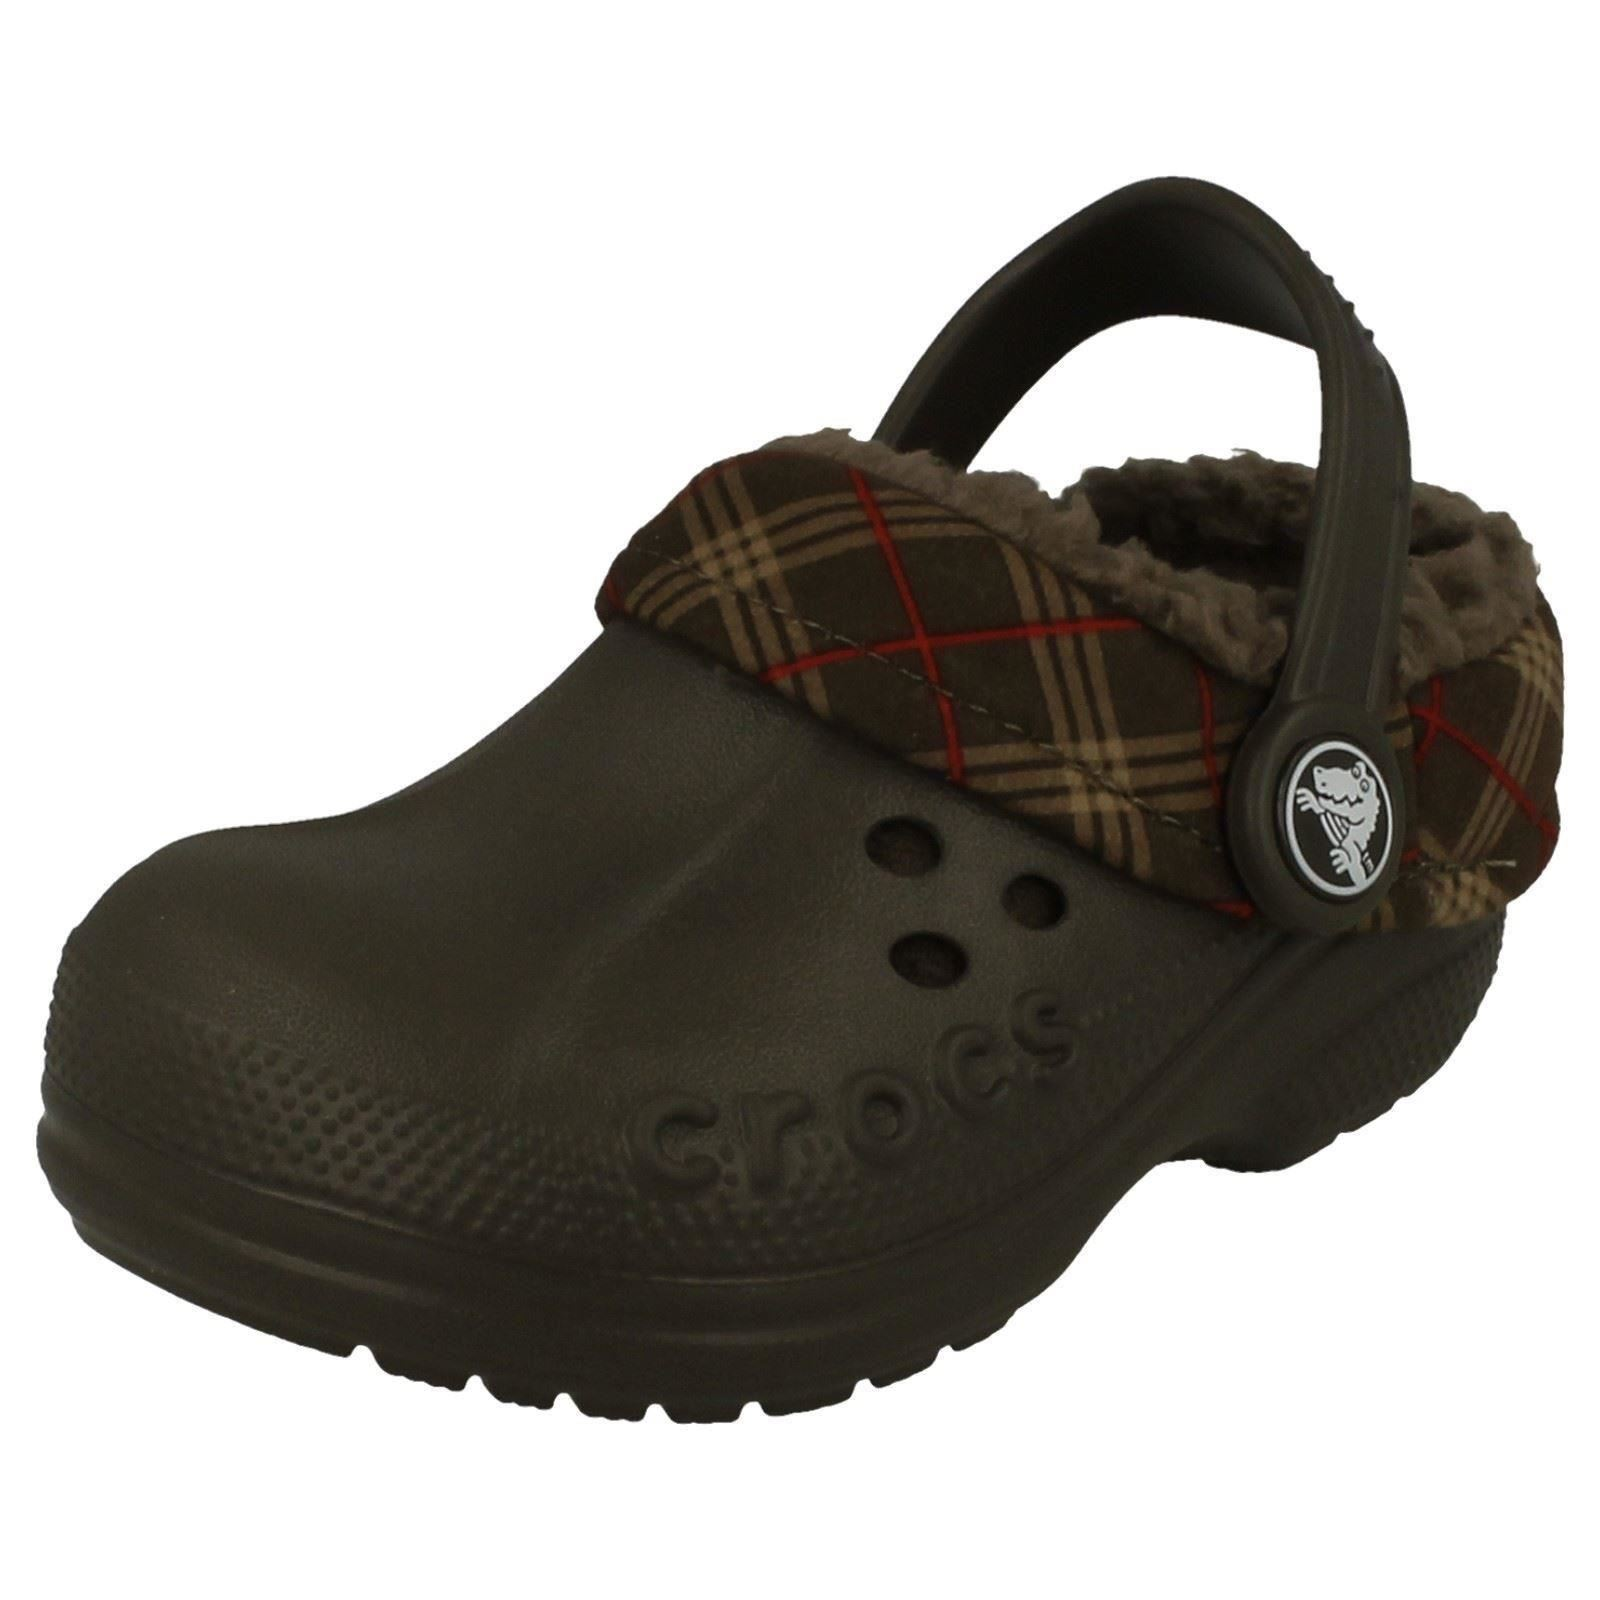 d47c40cf37a86 Details about Crocs Boys Sandals - Blitzen Winter Plaid Kids